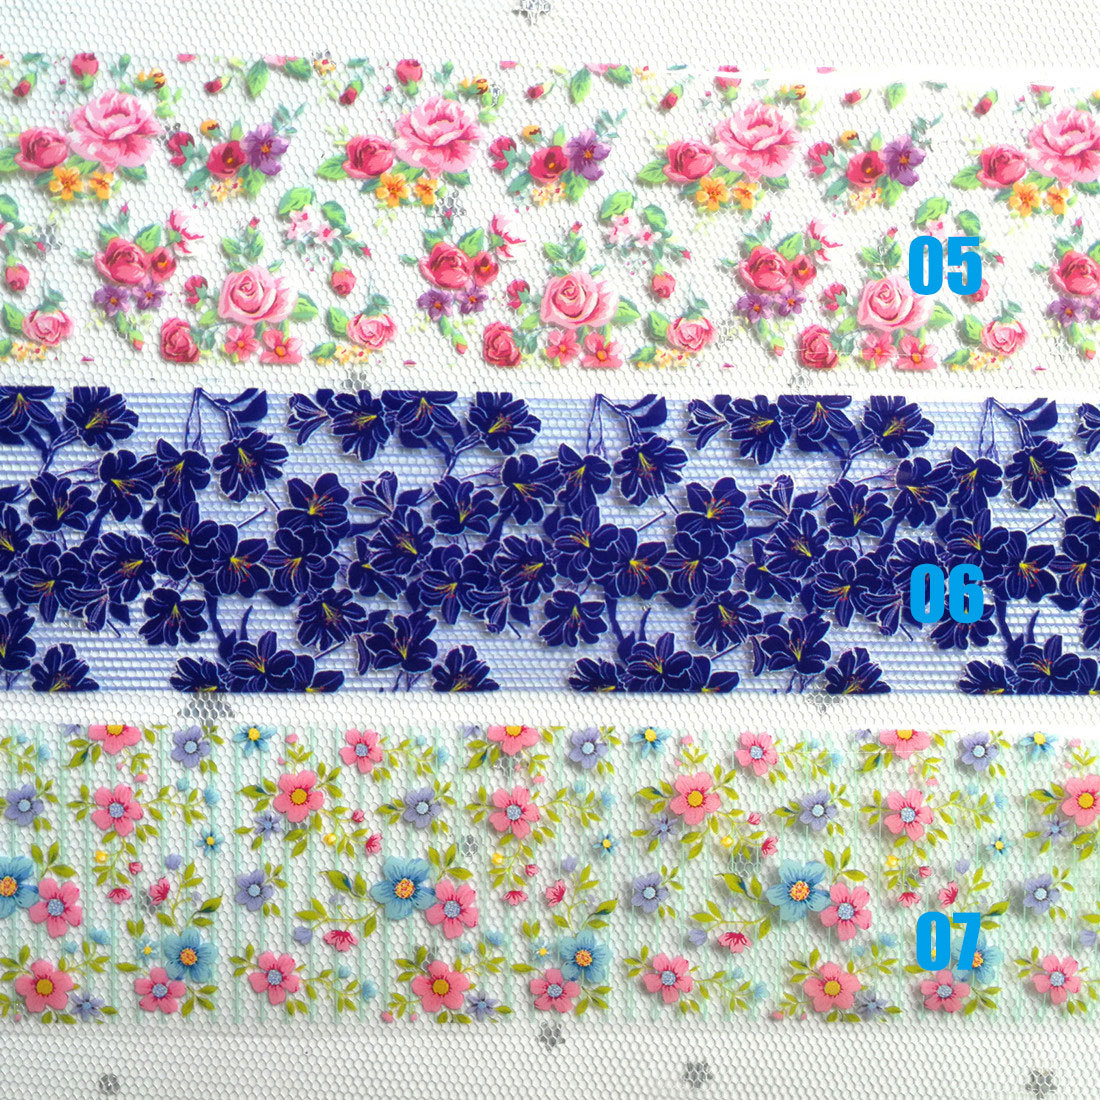 Fashion 3D Decor Colorful Flower Nail Decal Nail Transfer Foil Starry Sky Nail Art Sticker 07